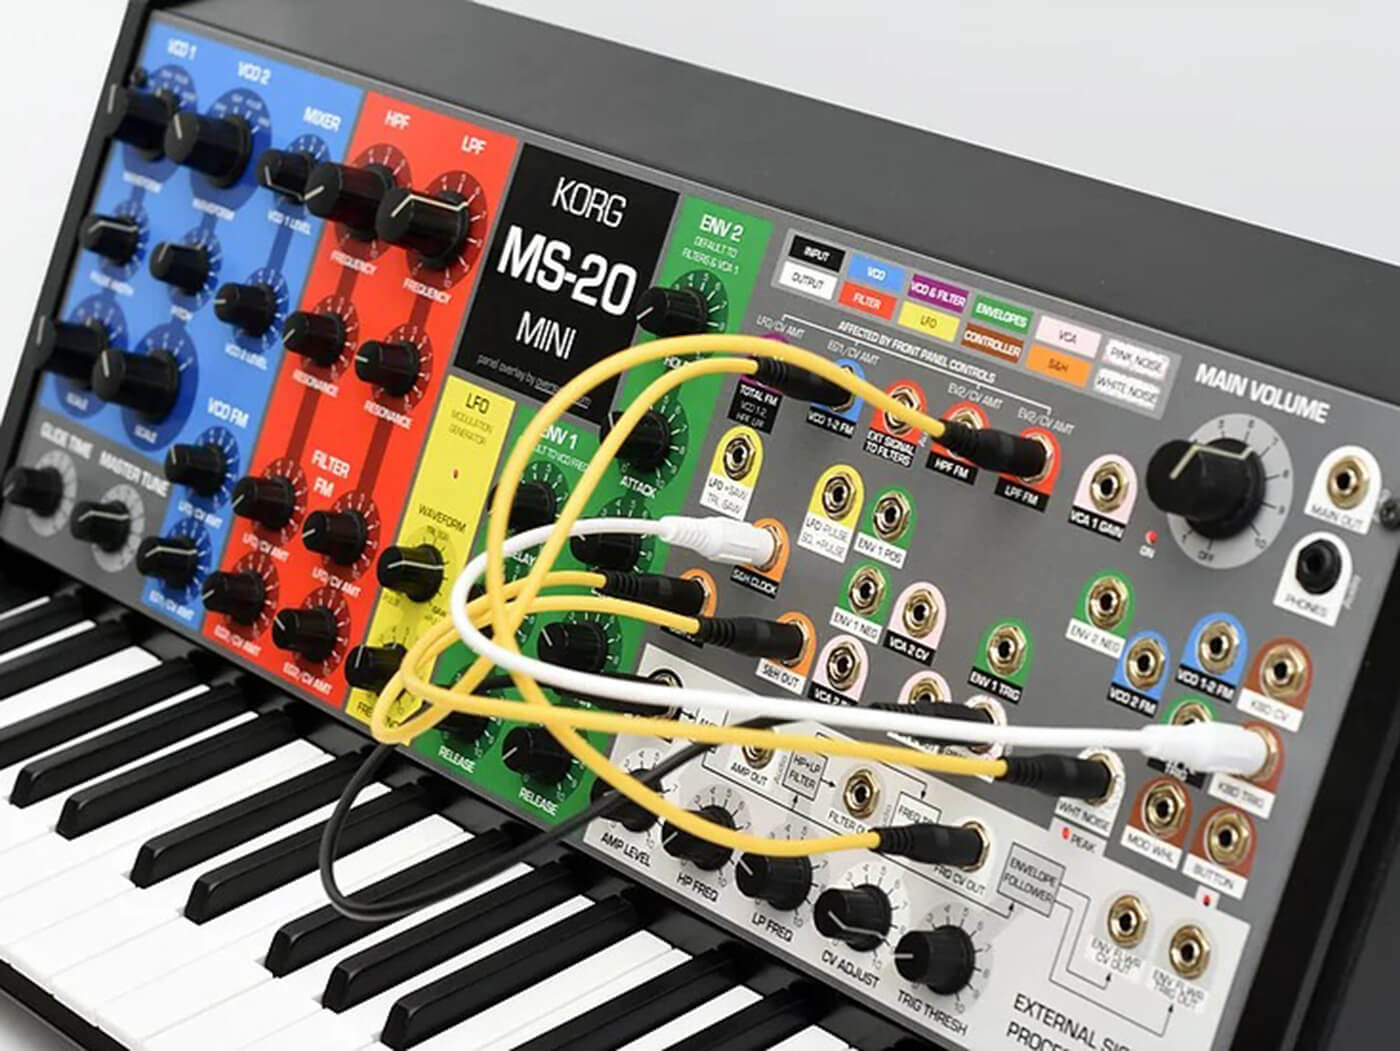 Get more out of your Korg MS-20 Mini with new overlays from